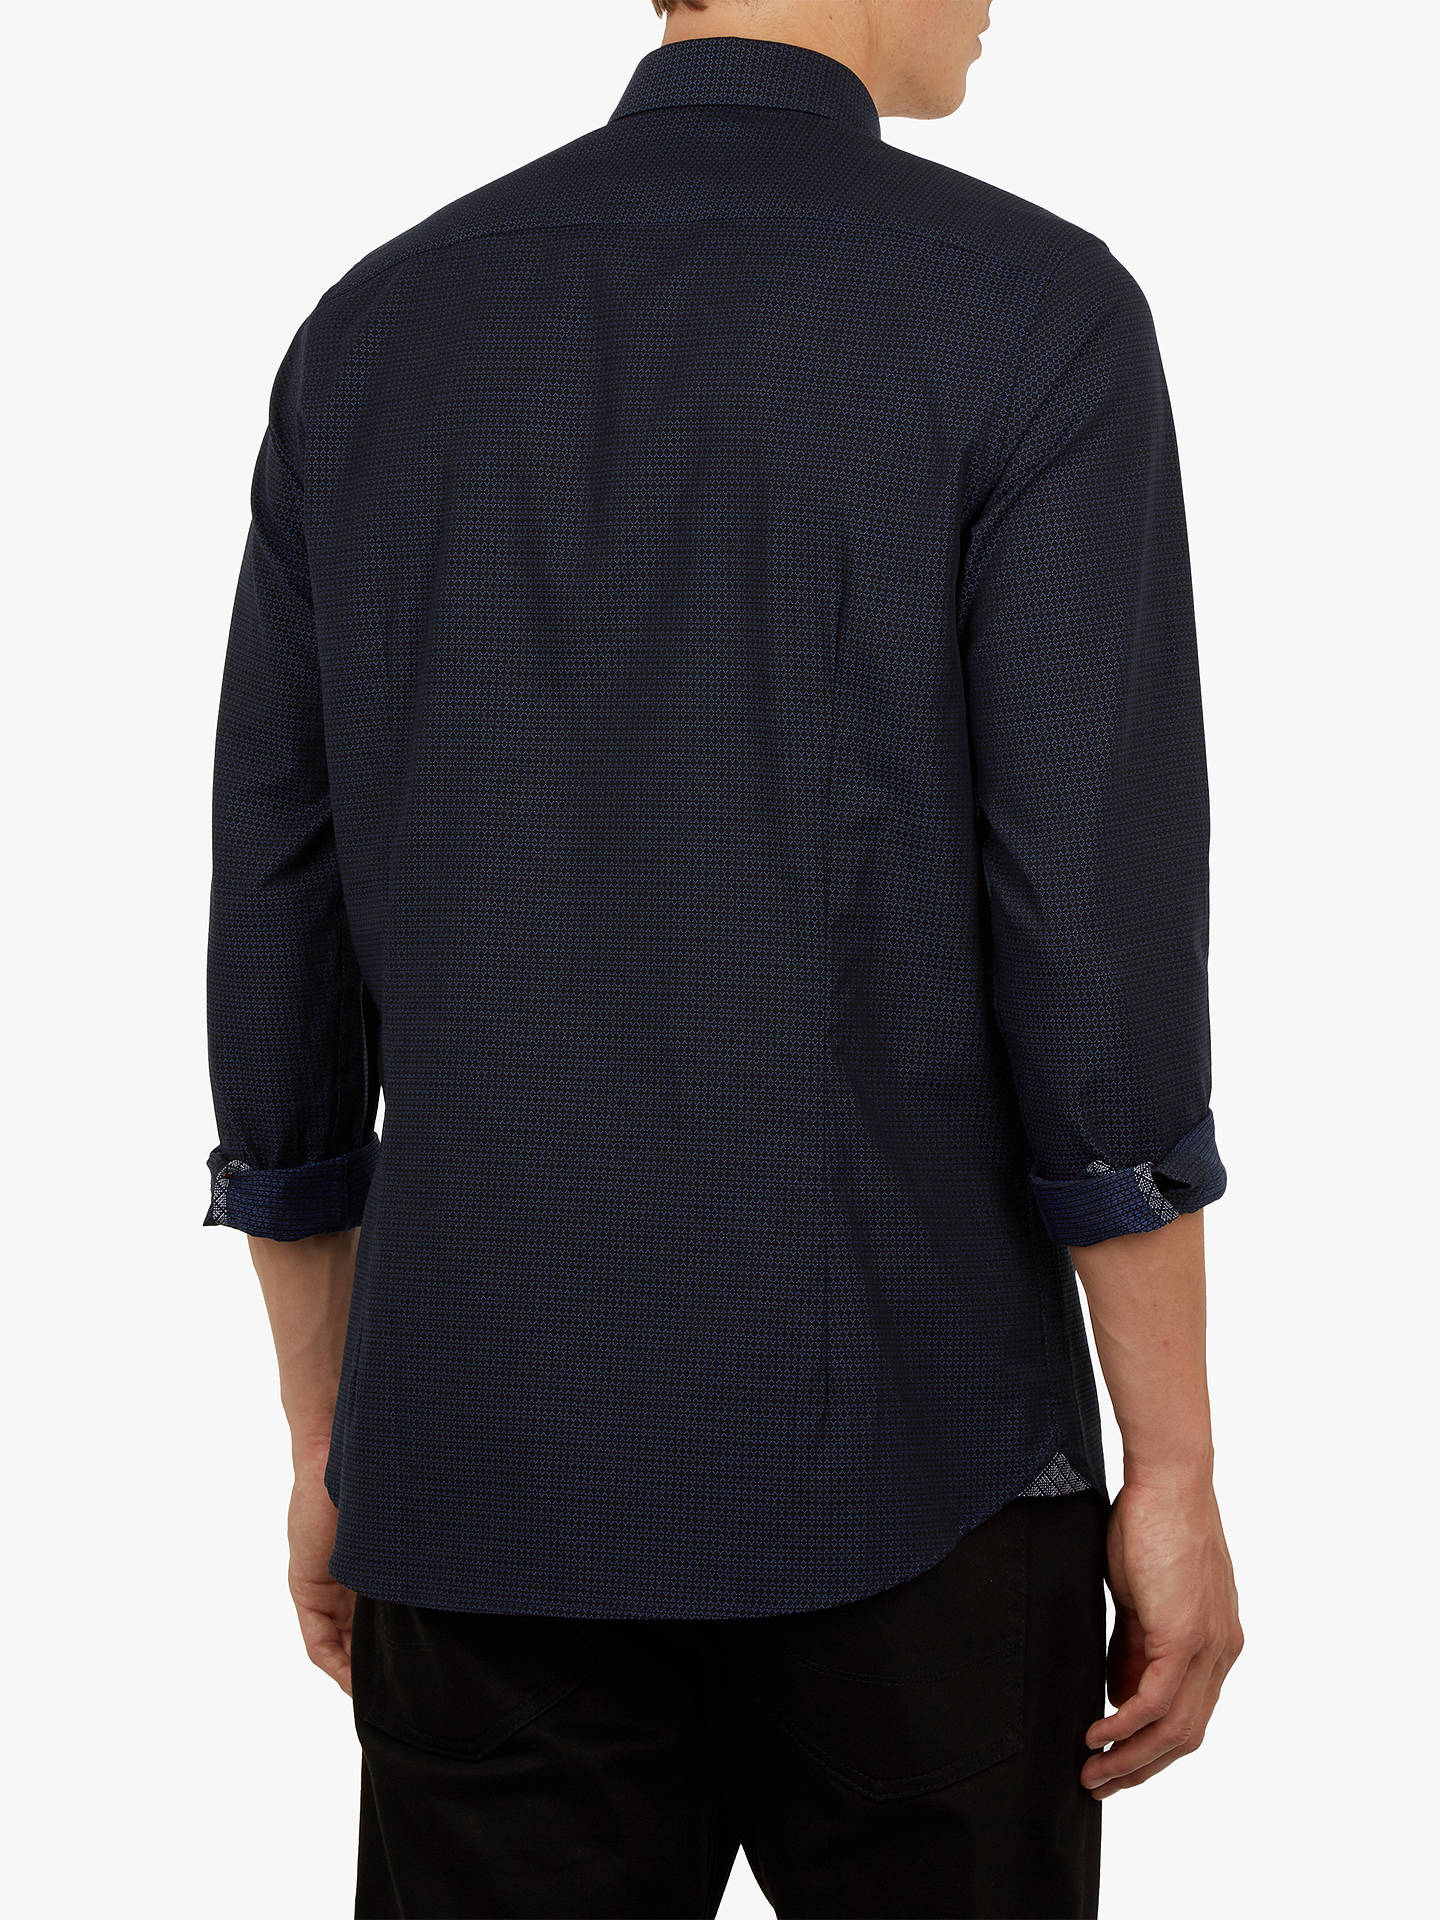 BuyTed Baker Myll Textured Long Sleeve Shirt, Navy, 15 Online at johnlewis.com